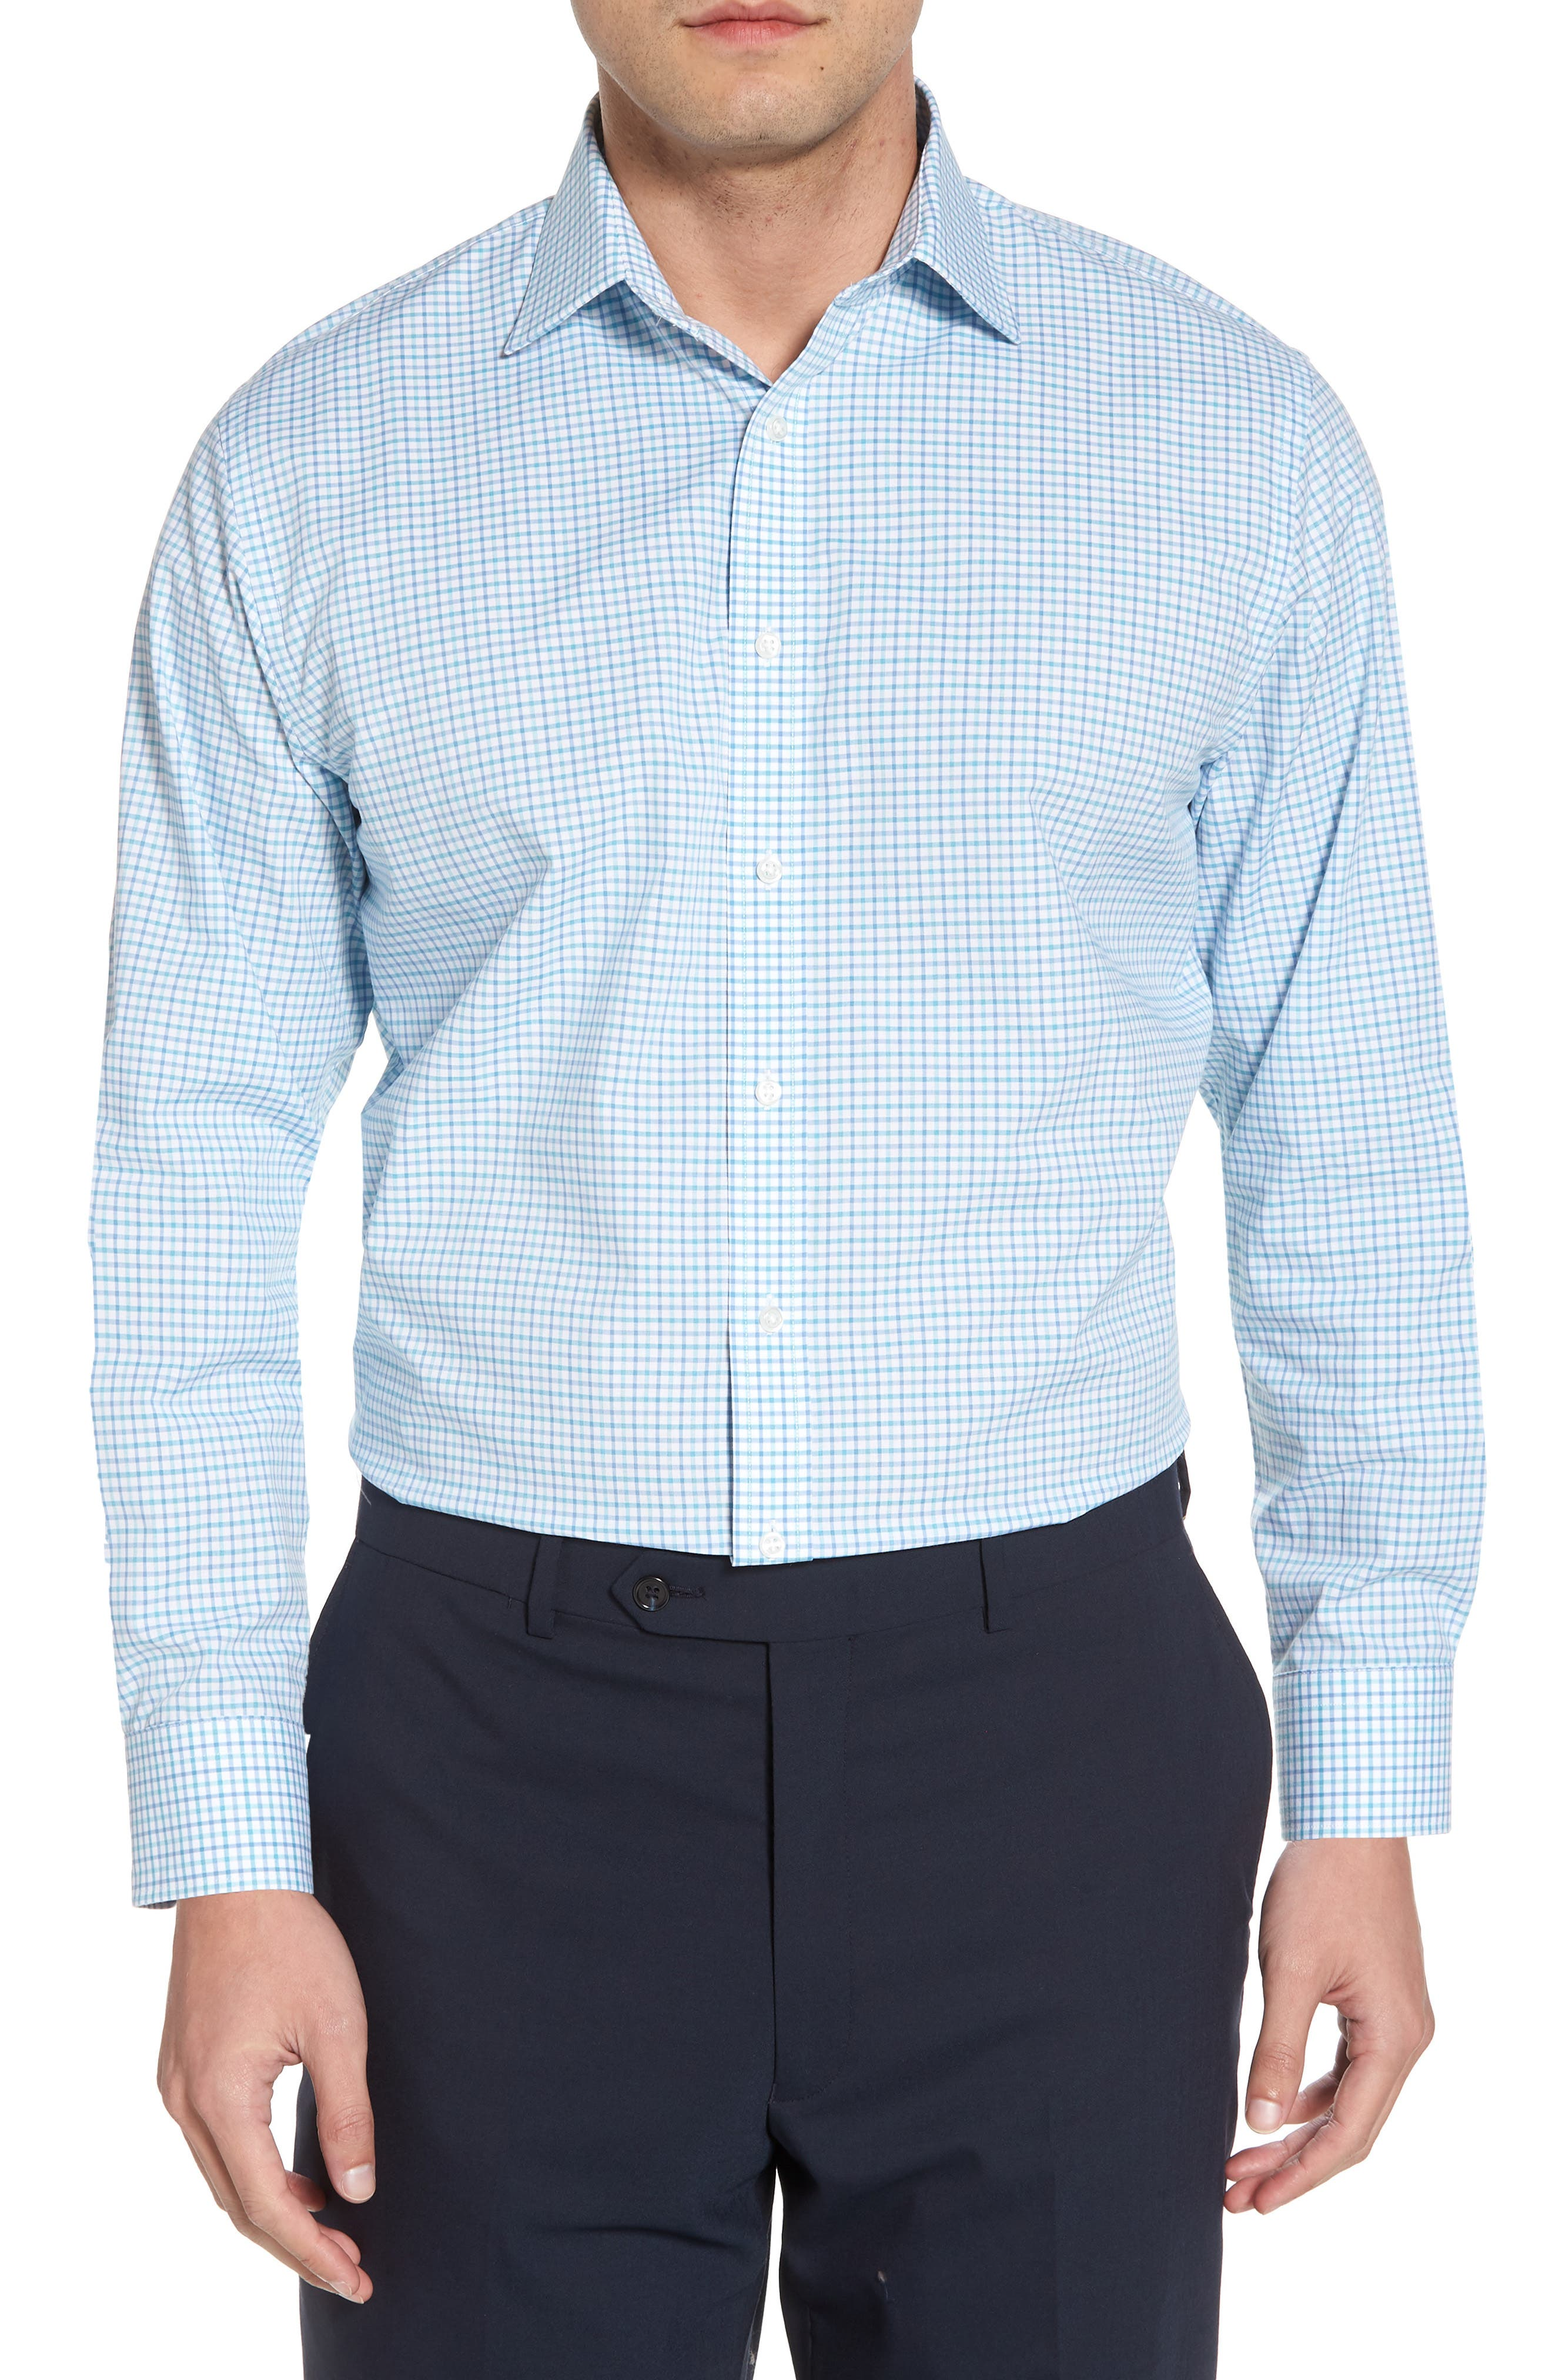 Alternate Image 1 Selected - Nordstrom Men's Shop Traditional Fit Check Dress Shirt